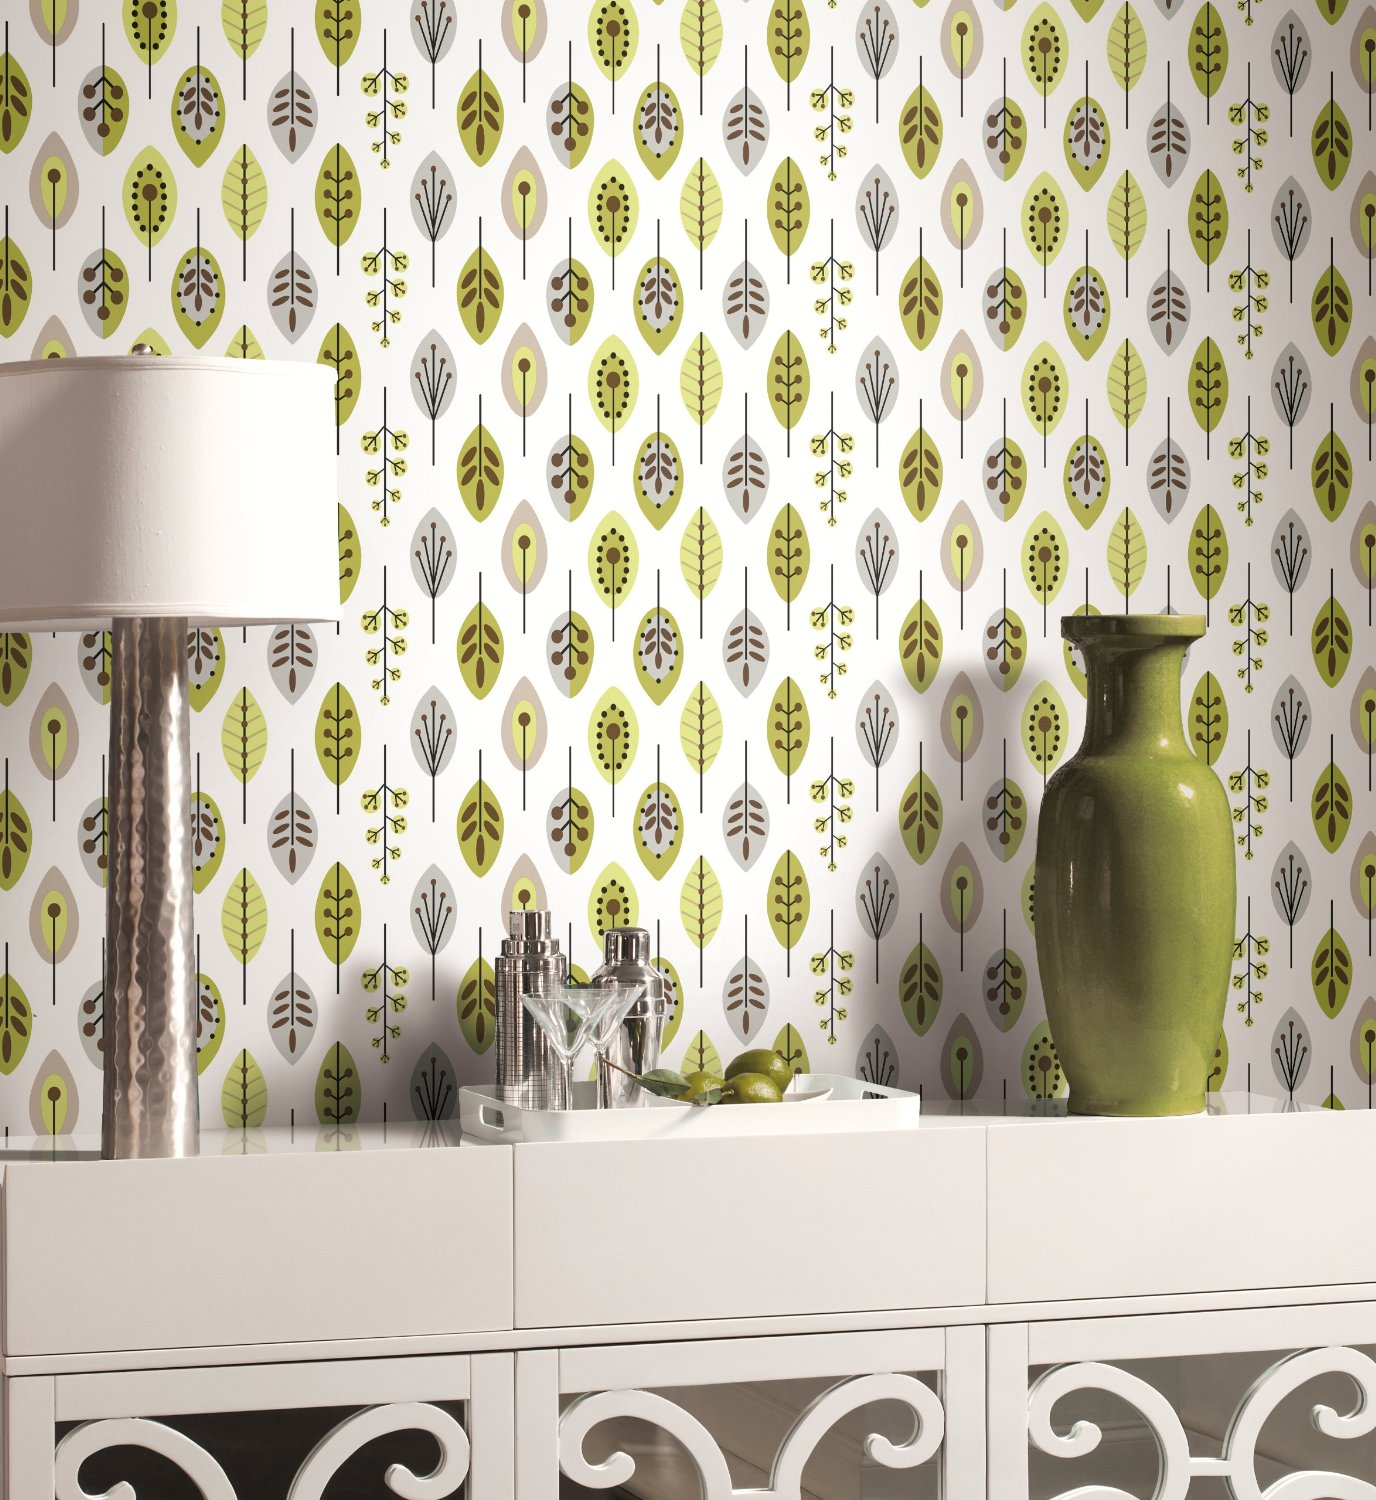 Using Wallpaper to Change a Room to Retro